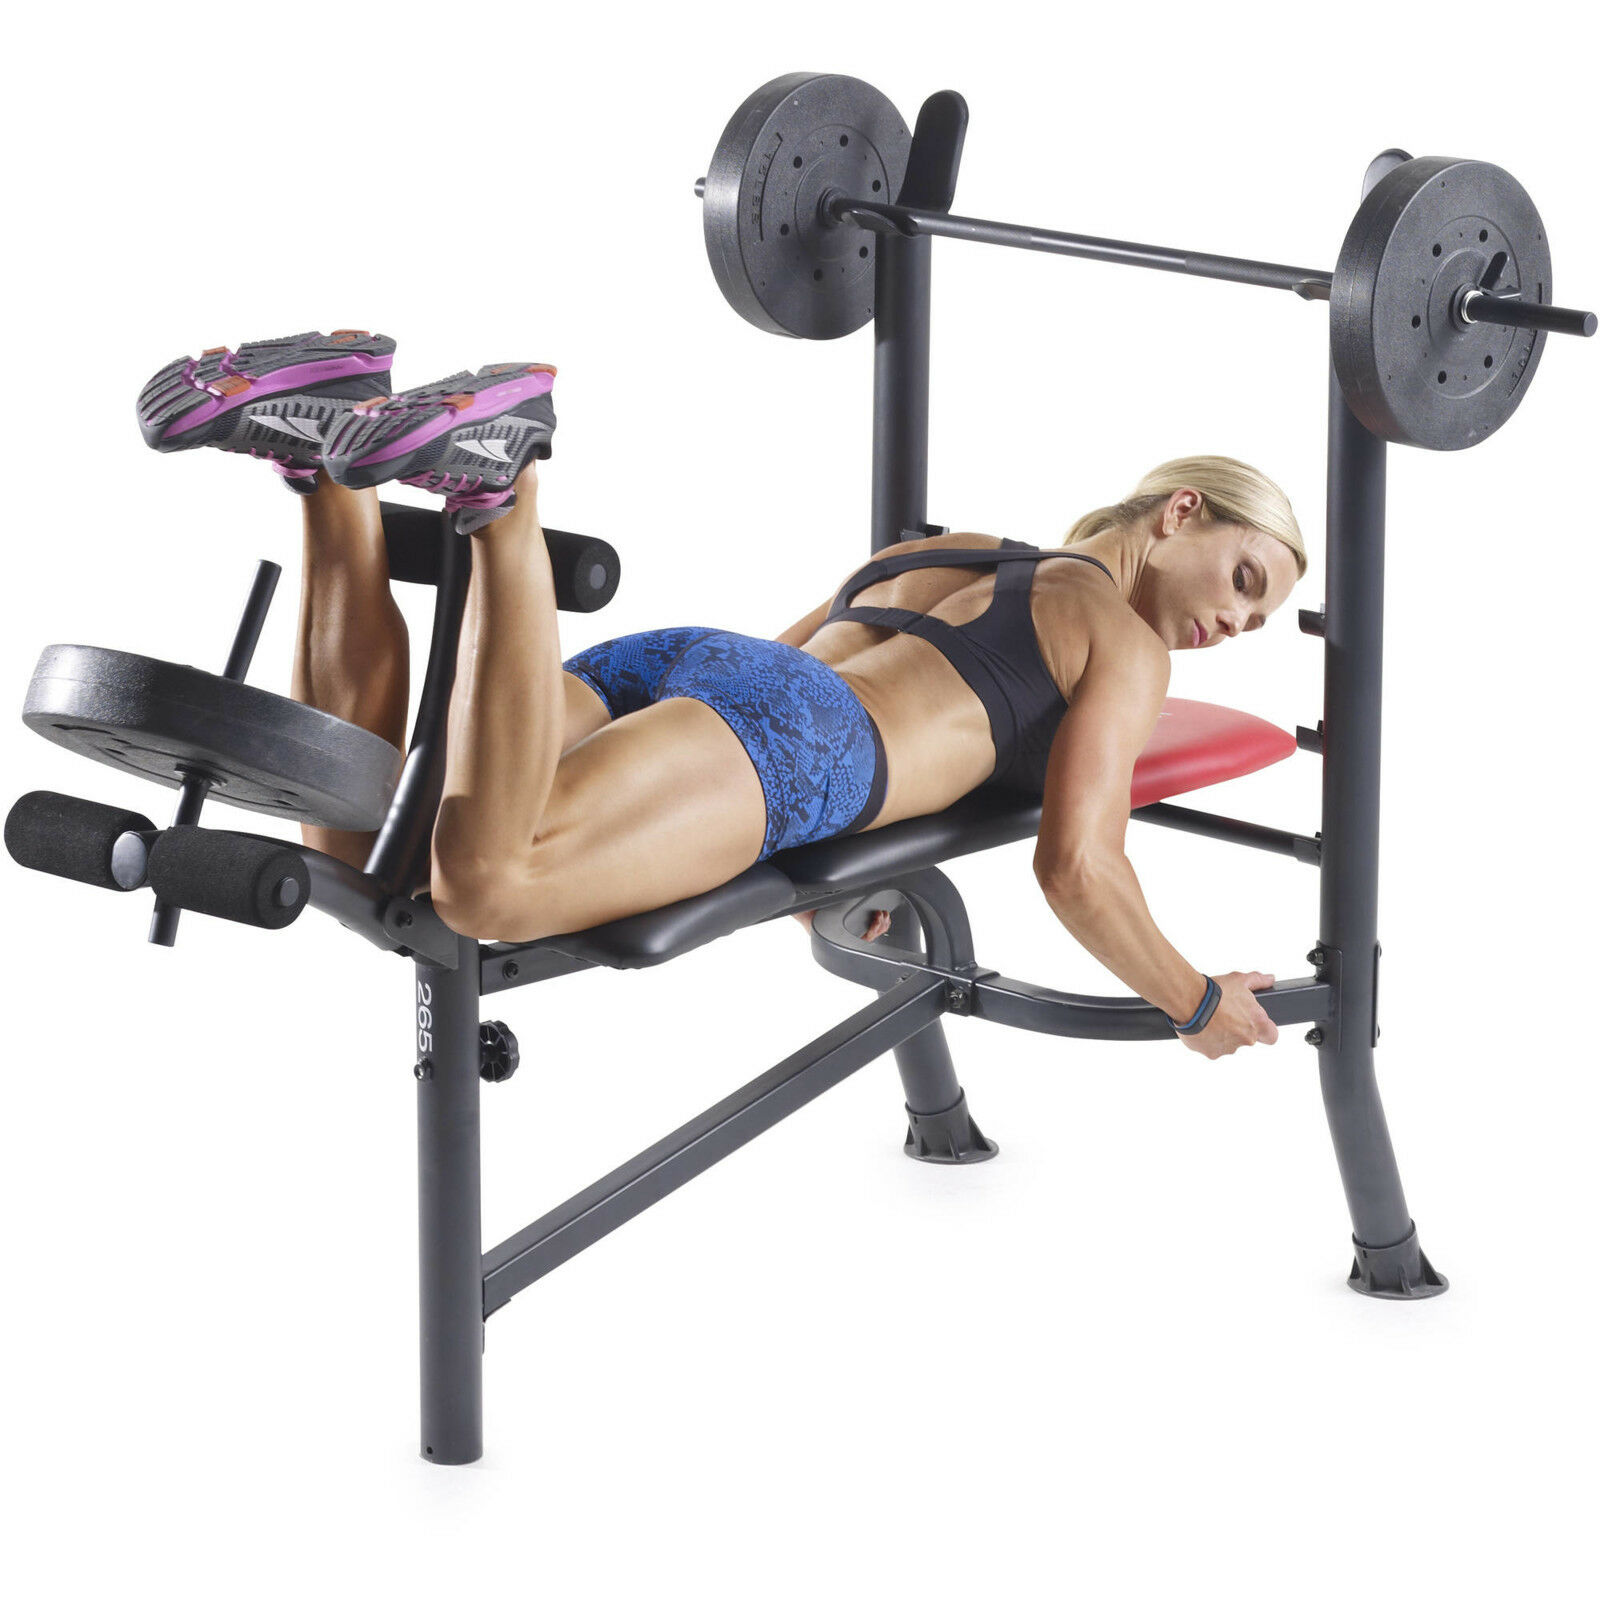 Weider Pro 265 Standard Bench with 80 Lb. Vinyl Weight  Exercise Set Lifting New  fast shipping and best service